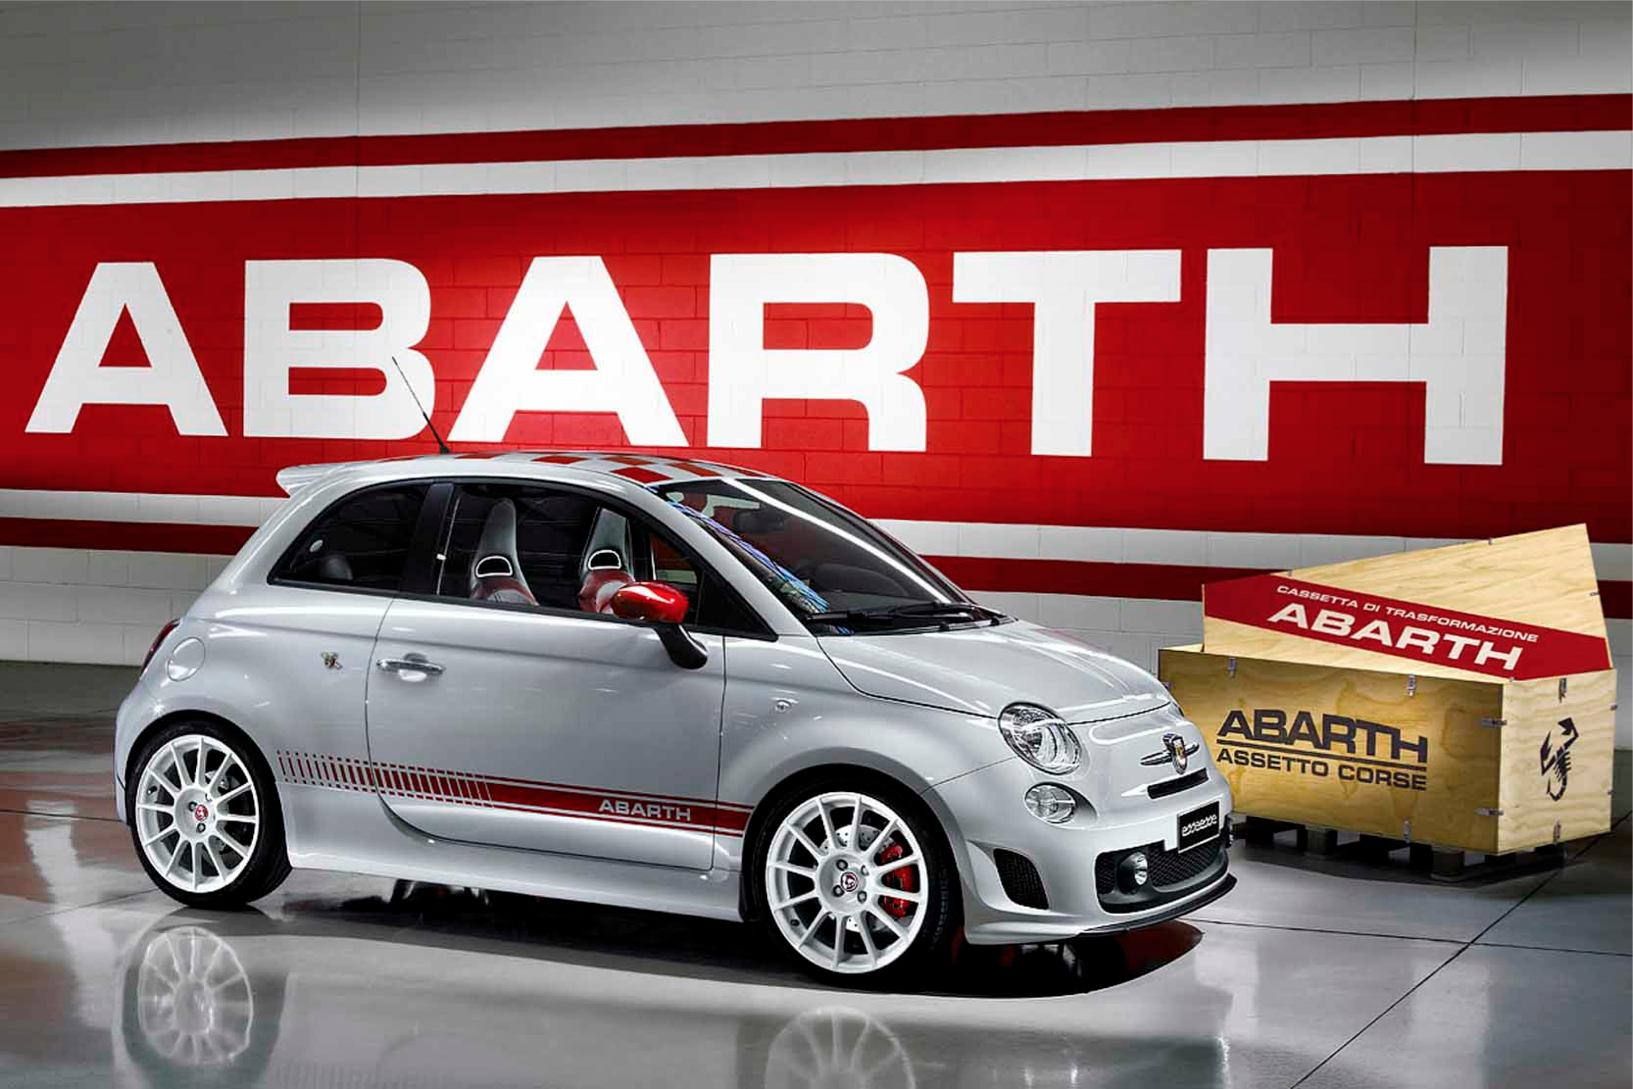 Abarth  500  Abarth   http://www.voiturepourlui.com/images/Abarth//Exterieur/Fiat_500_Abarth_015.jpg